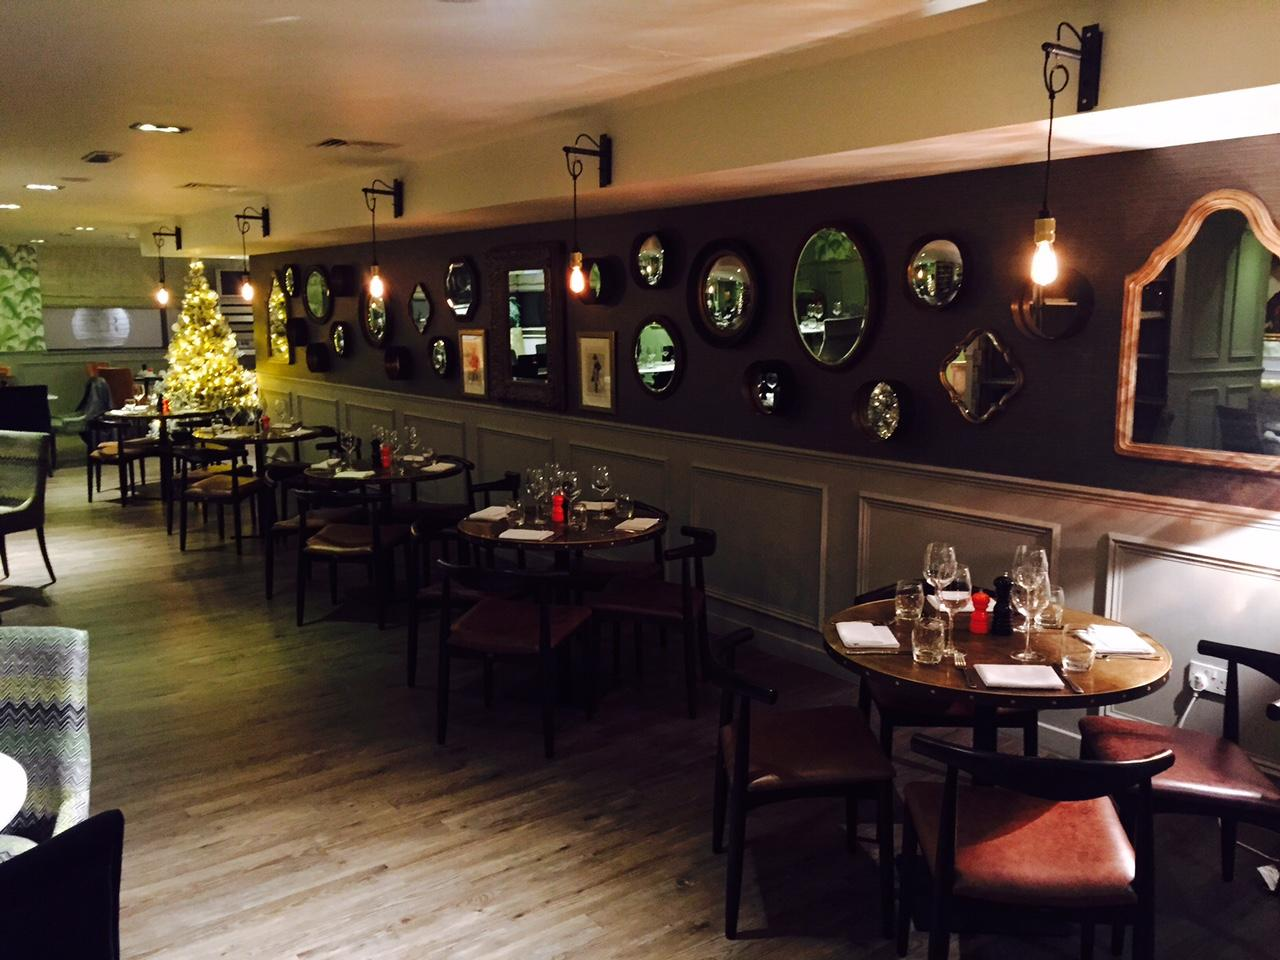 Queens Road, Restaurant, Bar & Grill - Warwickshire